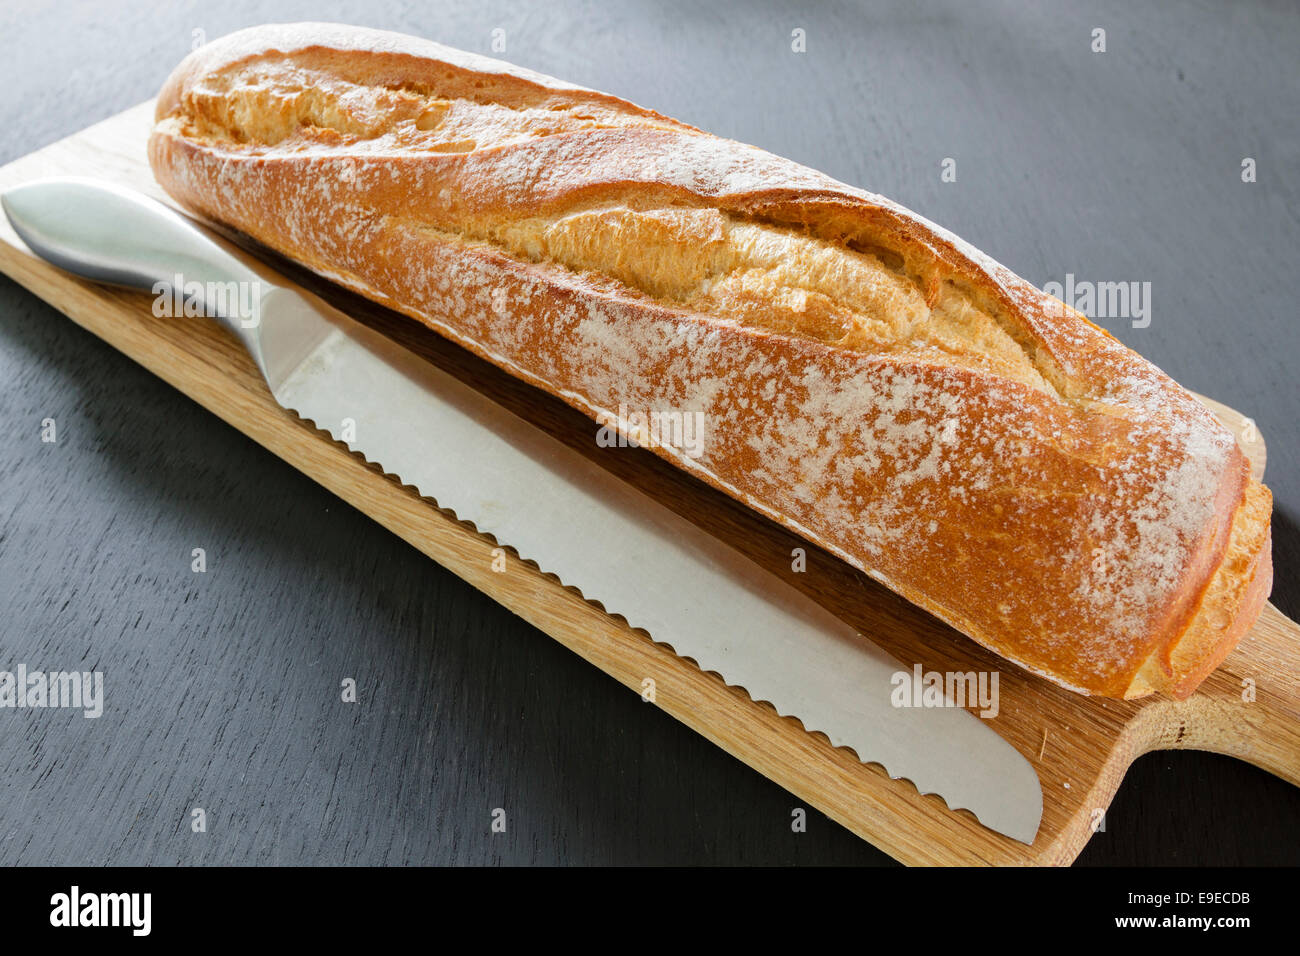 Fresh crusty baguette next to a bread knife on a wooden chopping board - Stock Image